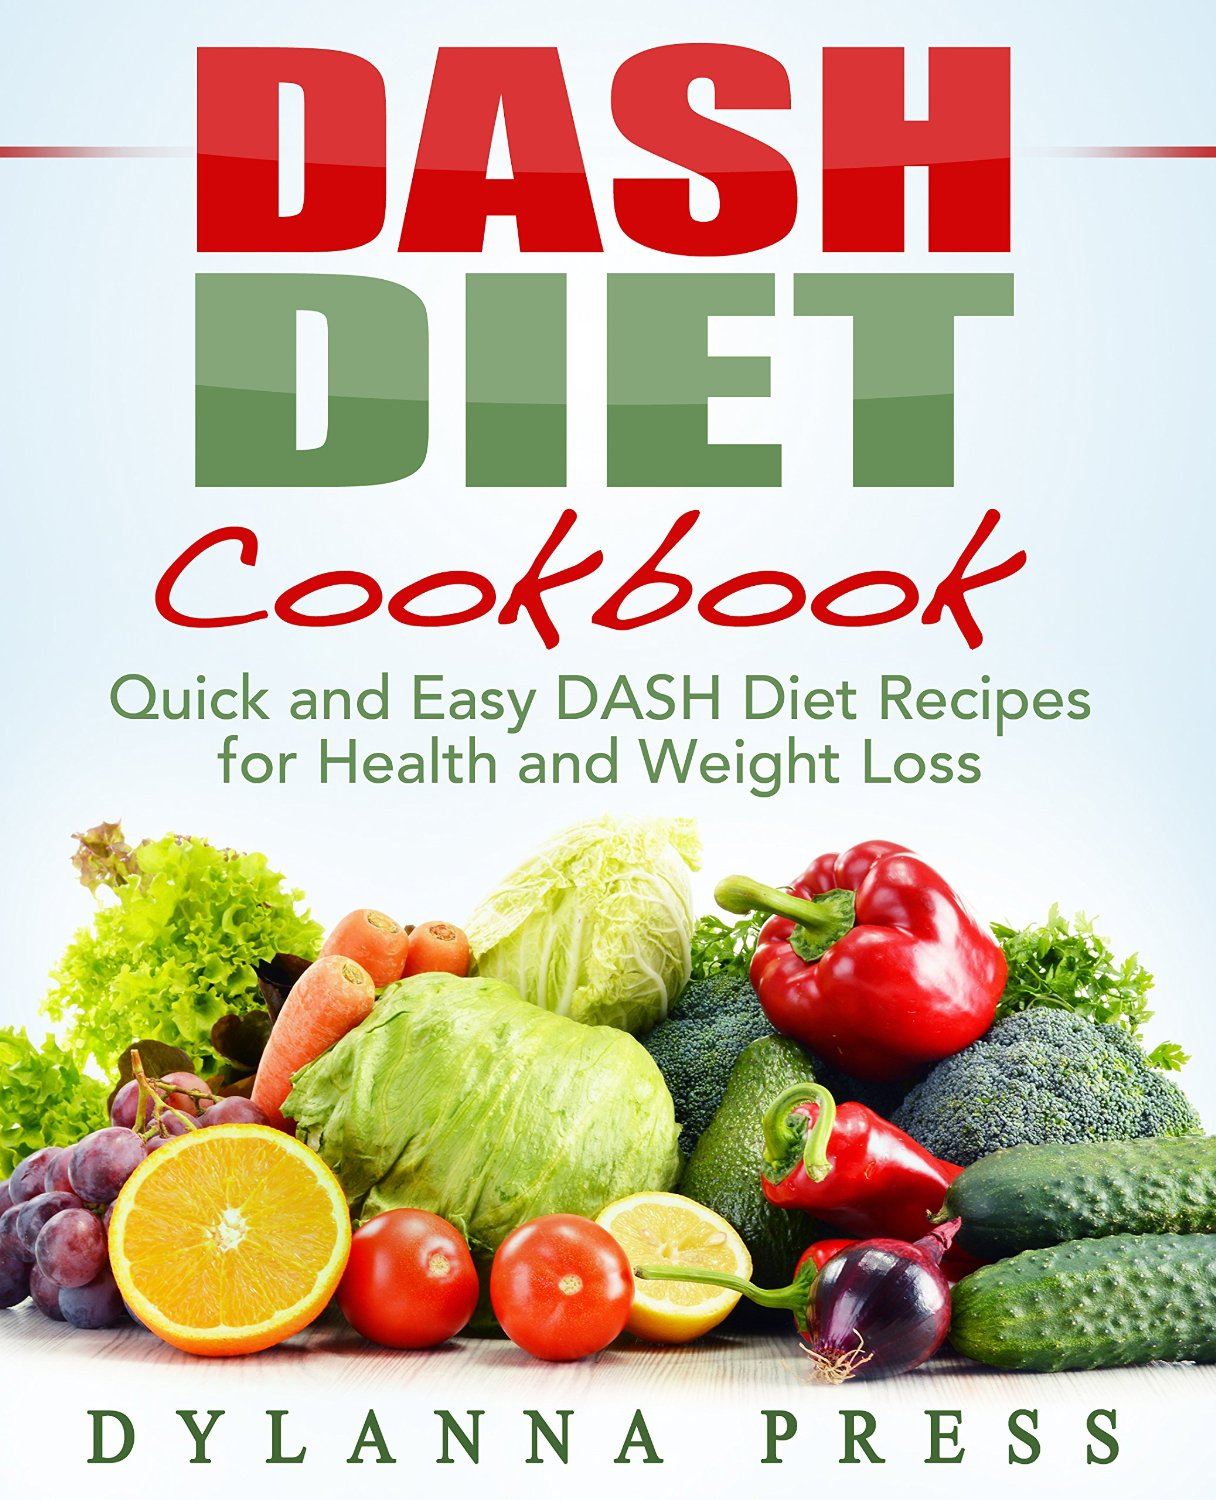 Dash Diet Cookbook: Quick and Easy DASH Diet Recipes for Health and Weight Loss free download